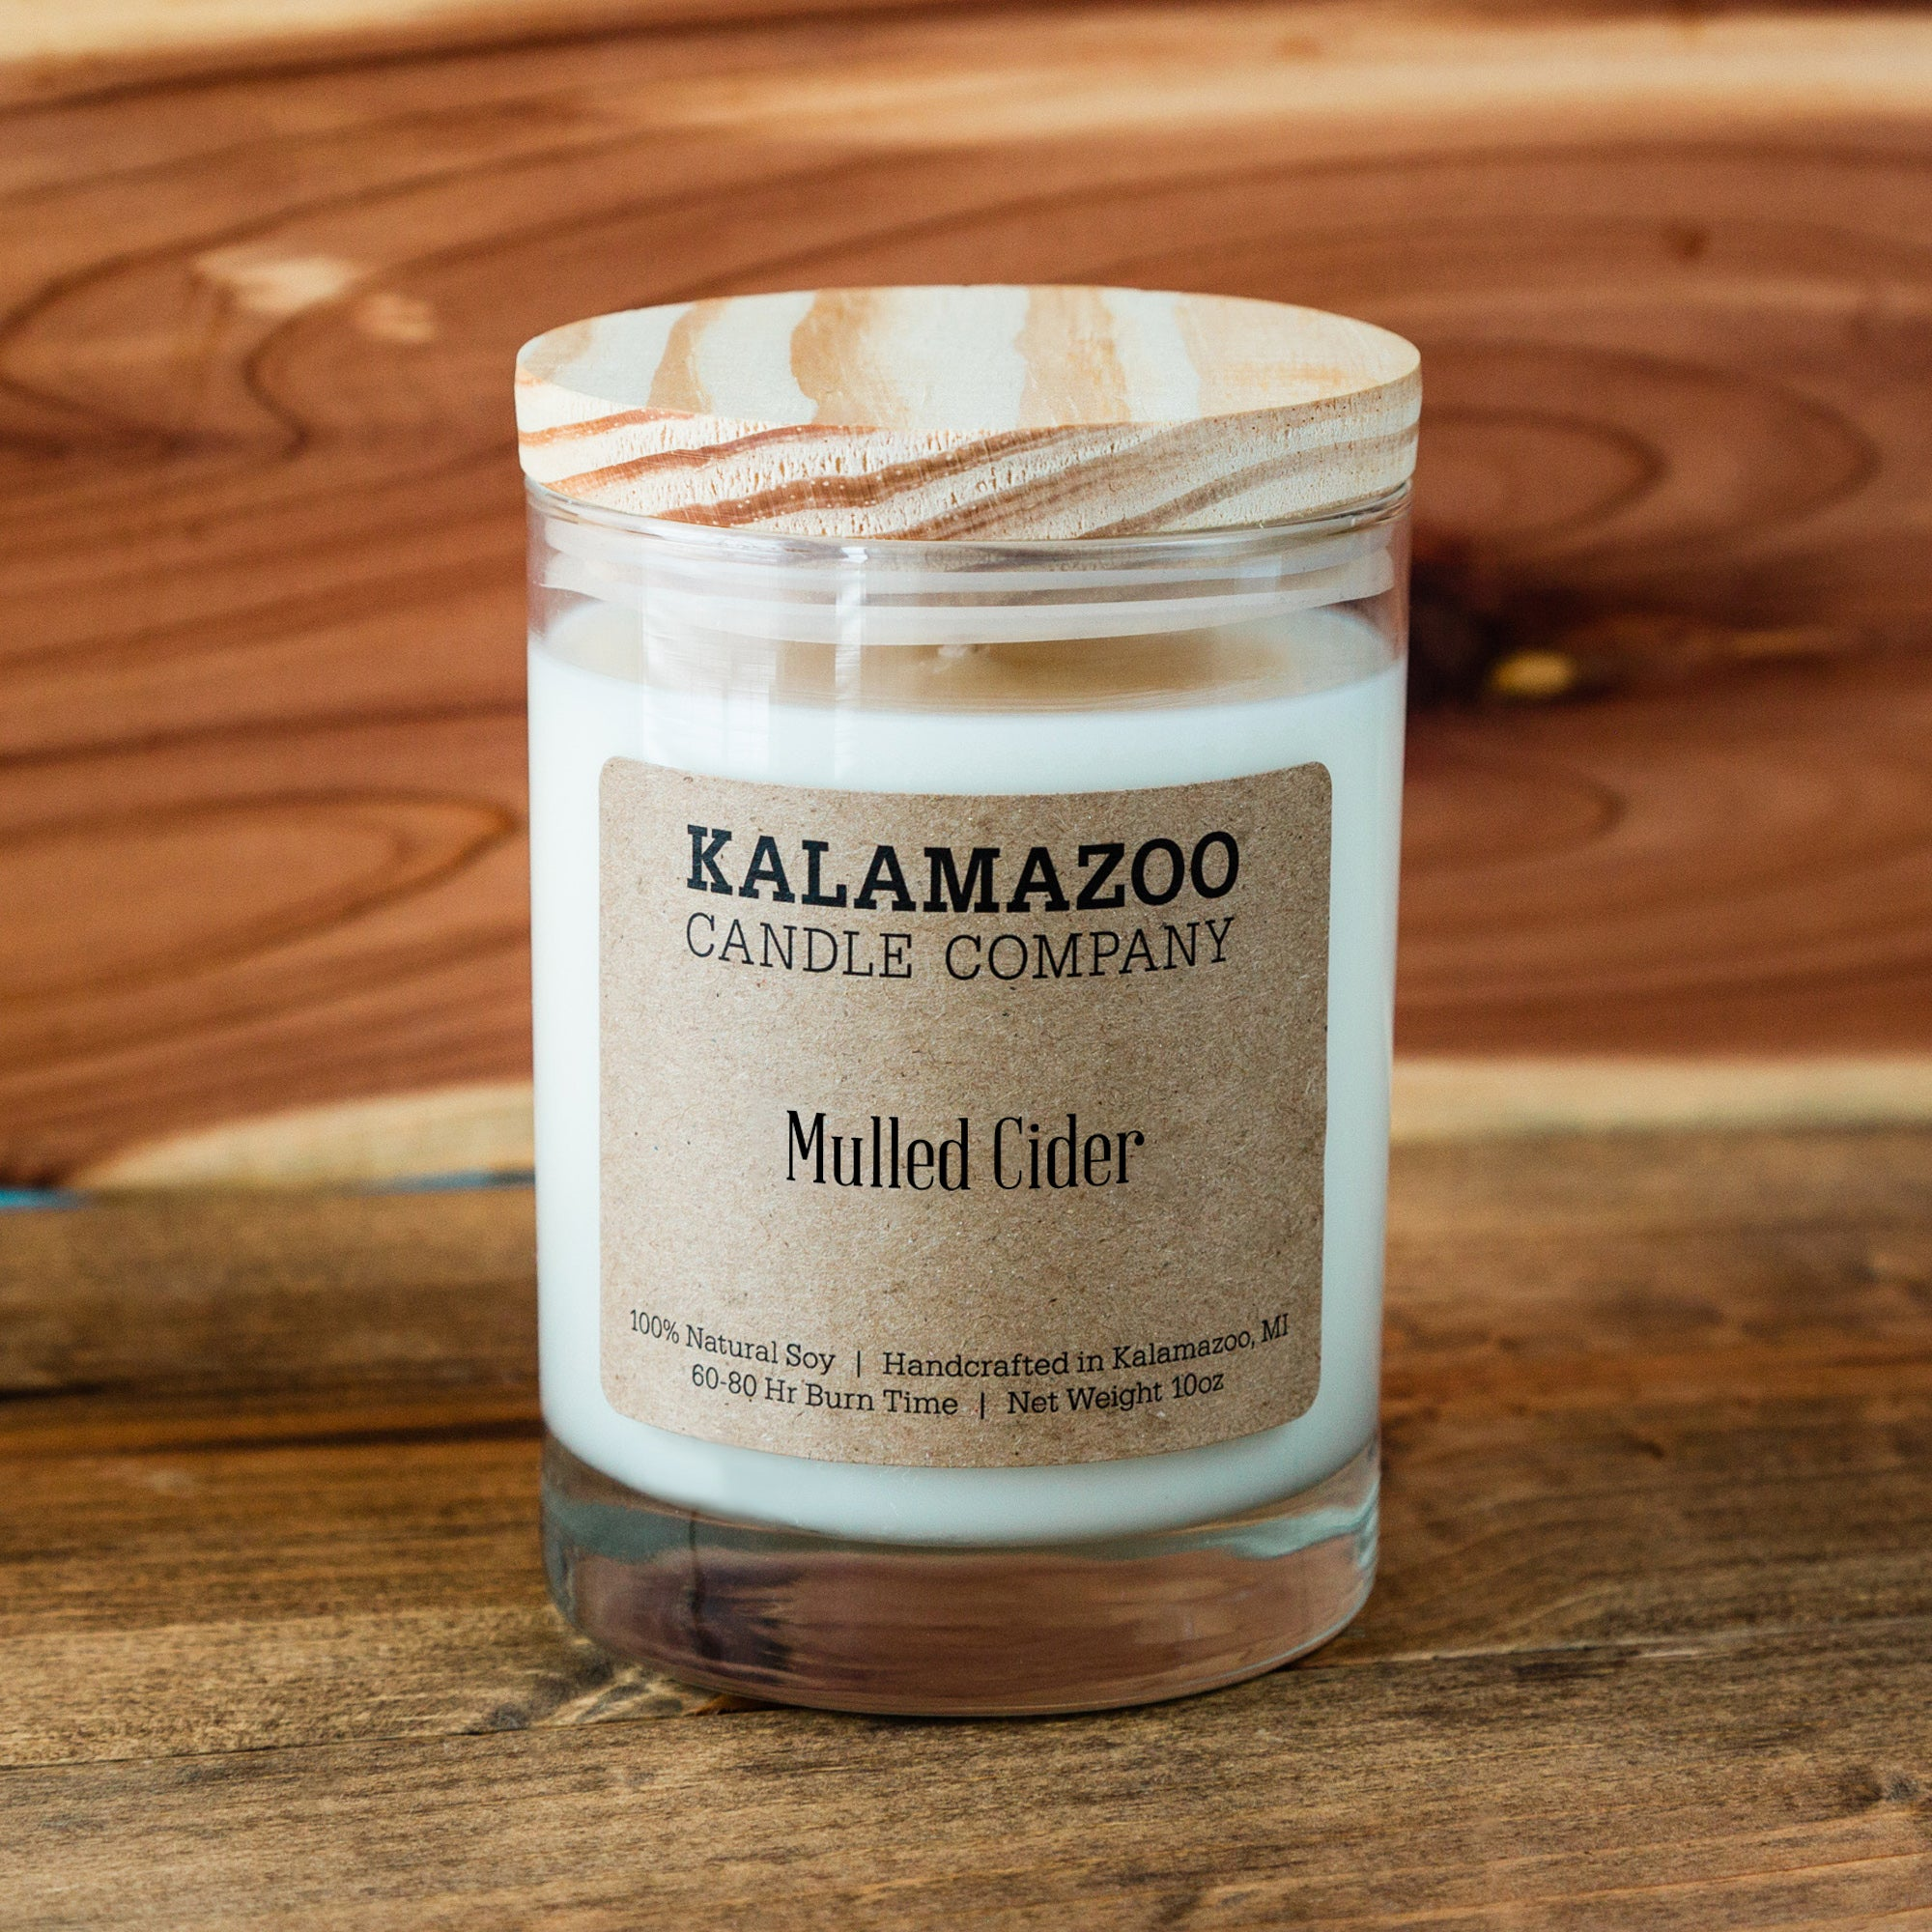 Mulled Cider Candle: 10oz Jar